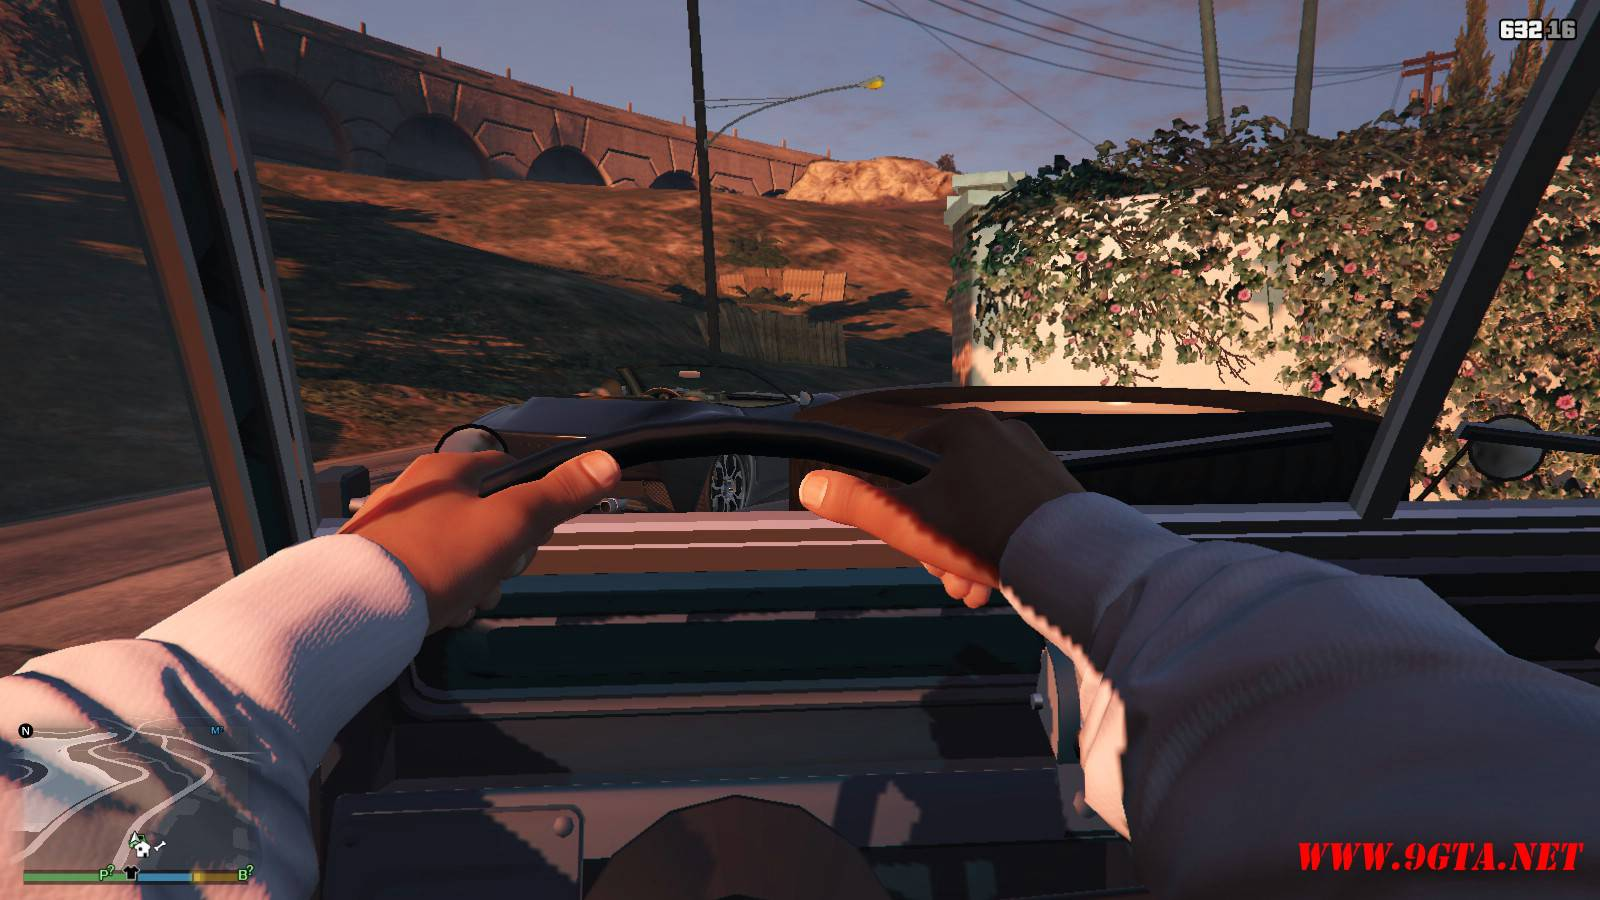 1971 Land Rover Series II Model 109A GTA5 Mods (7)